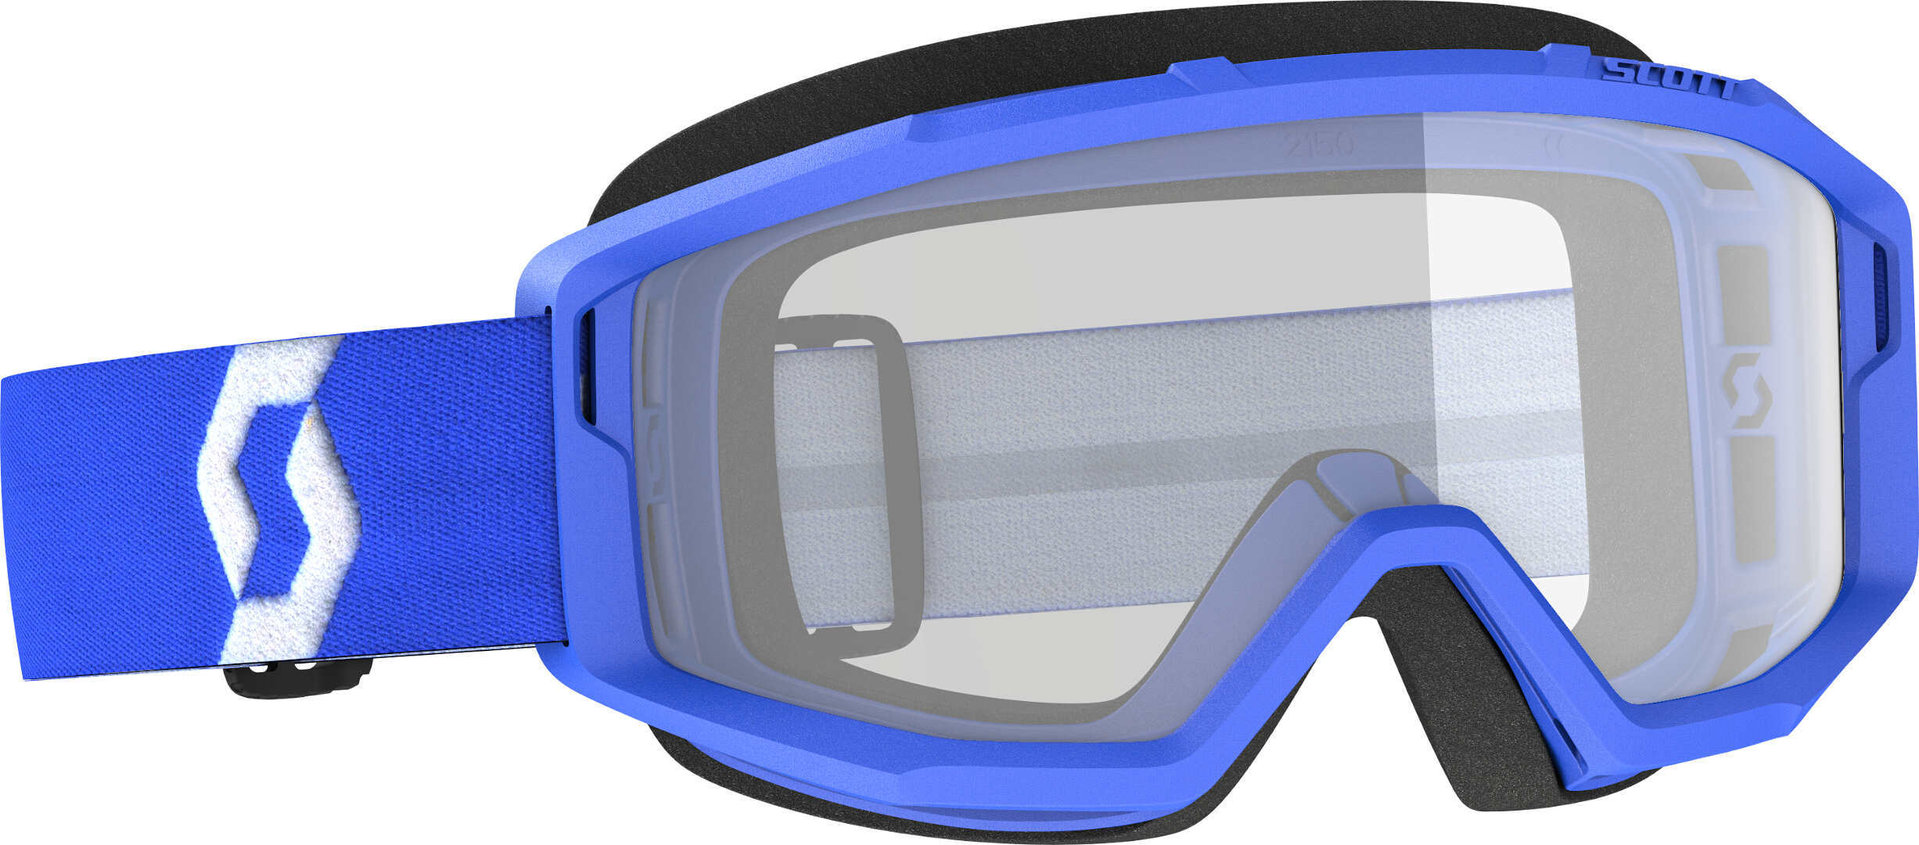 Scott Primal Clear blaue Motocross Brille, blau